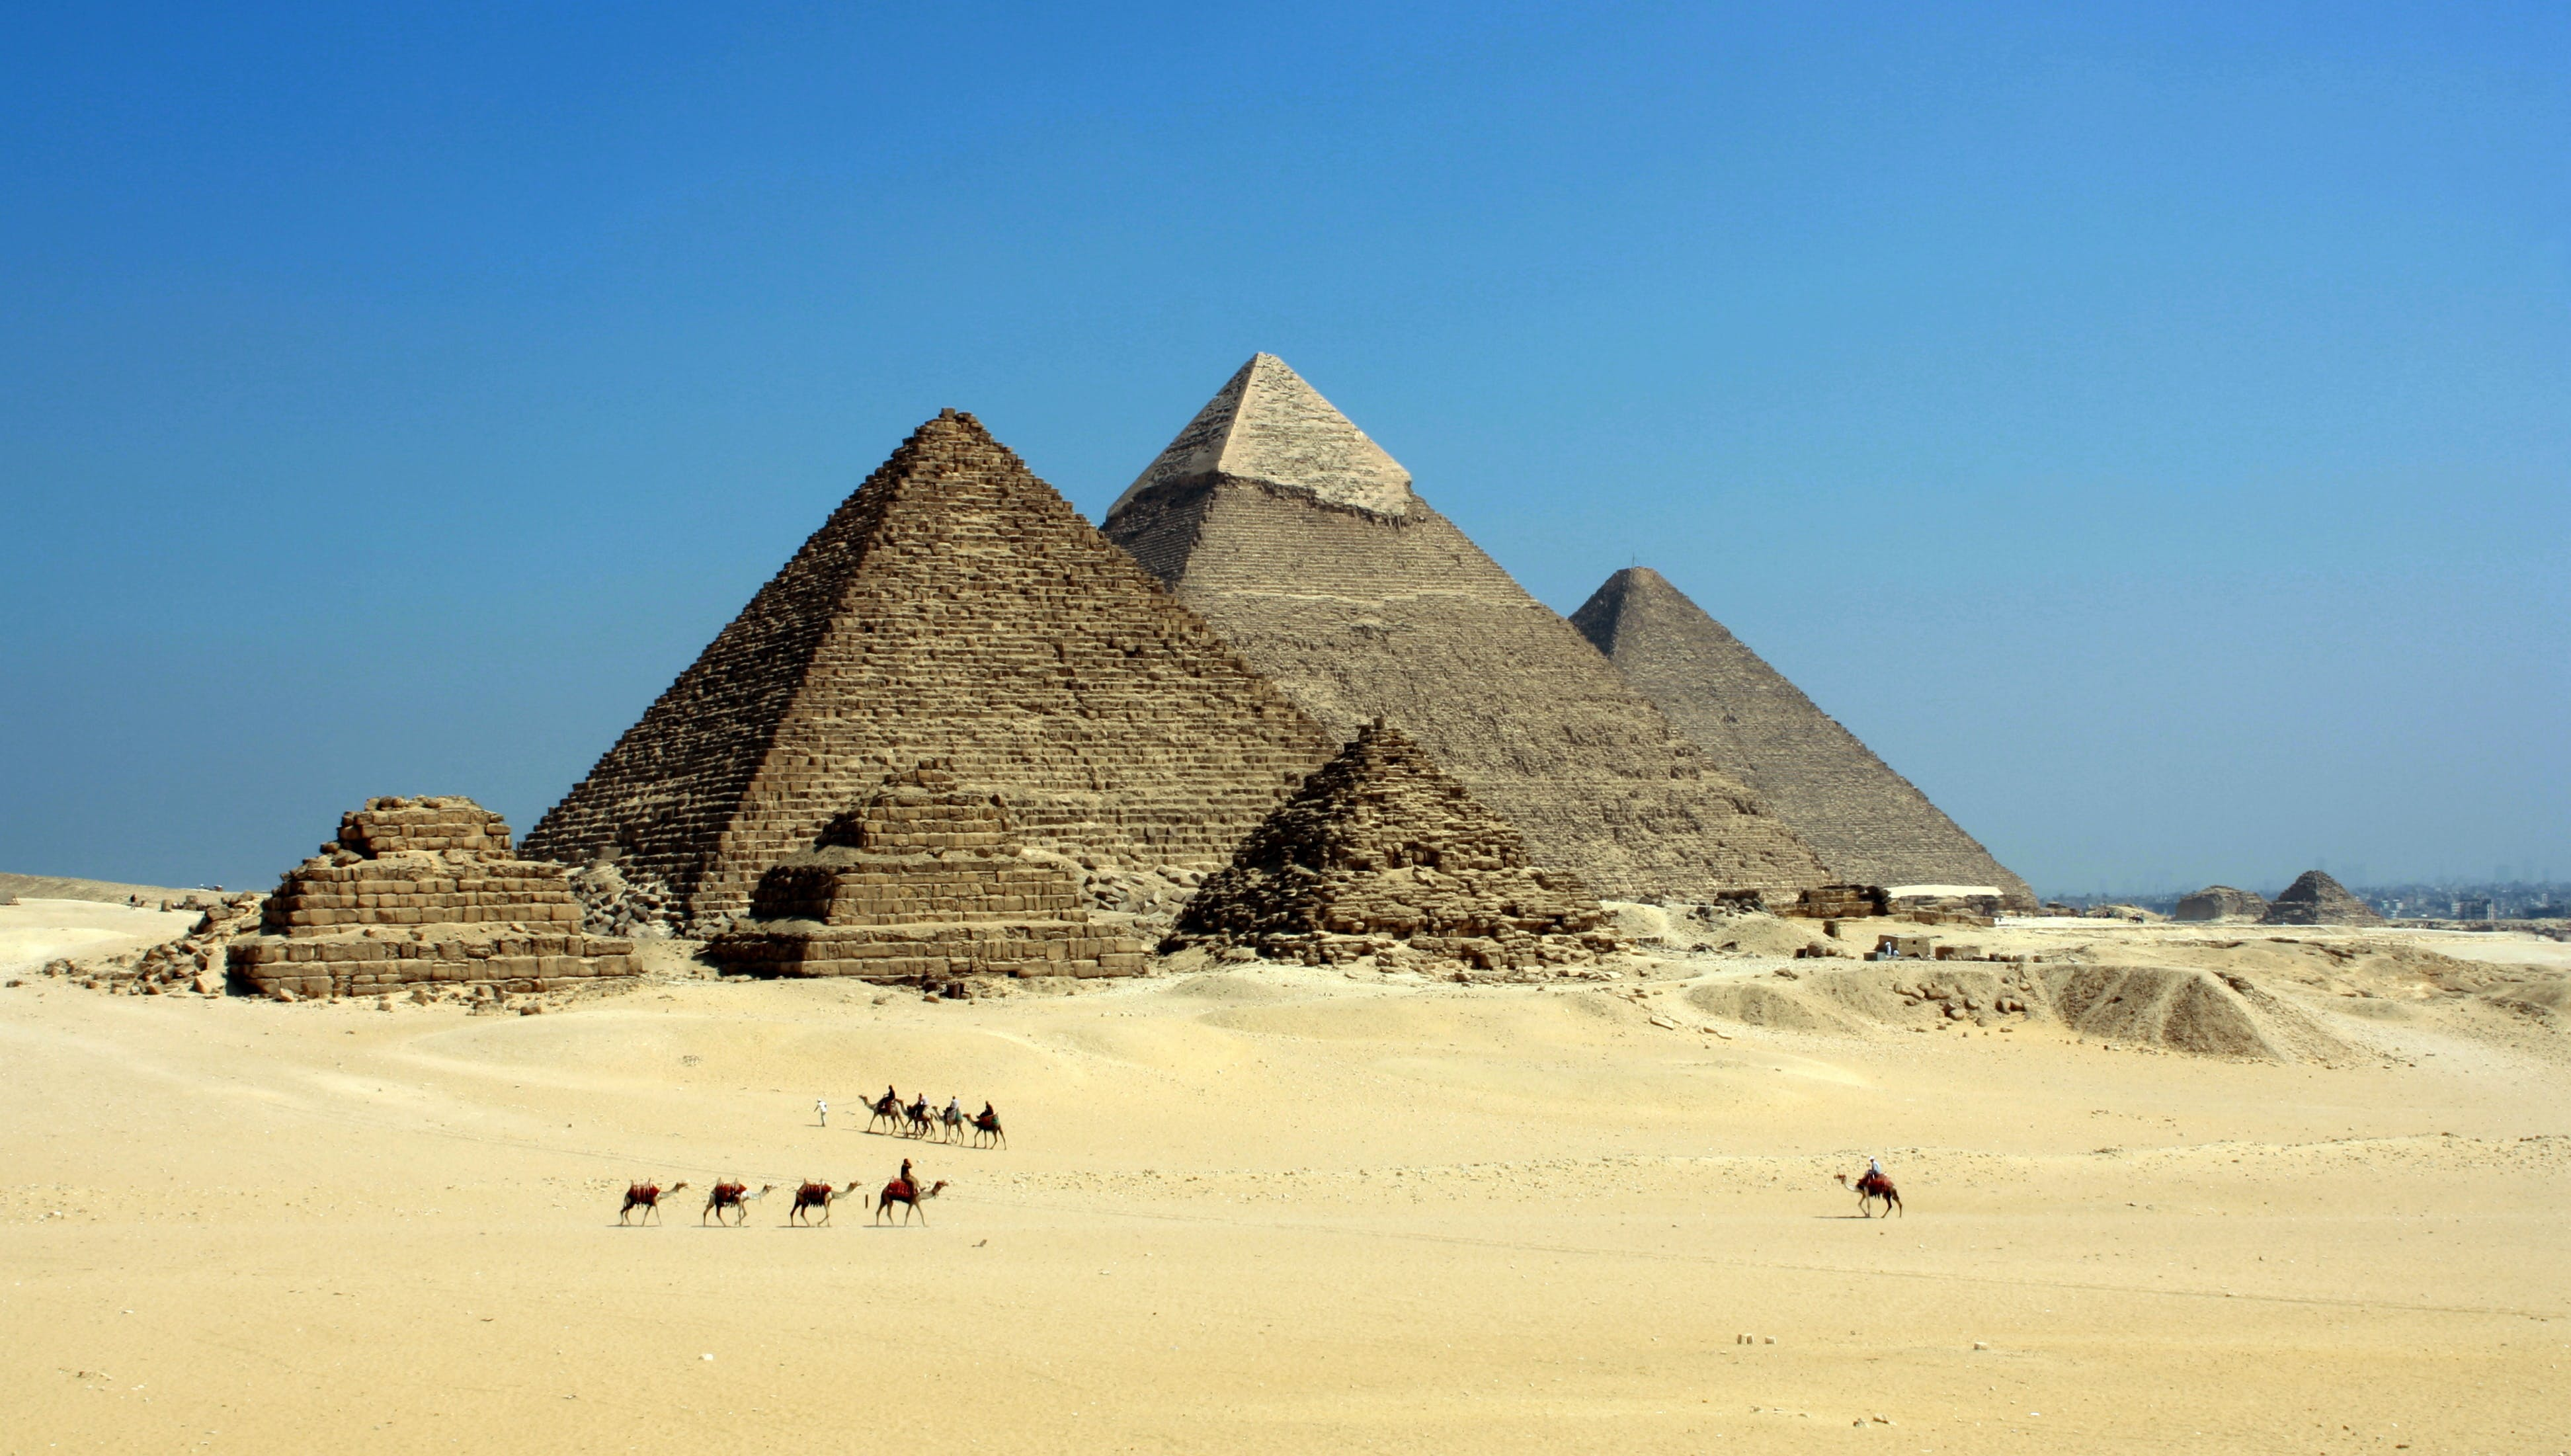 Gray Pyramid on Dessert Under Blue Sky